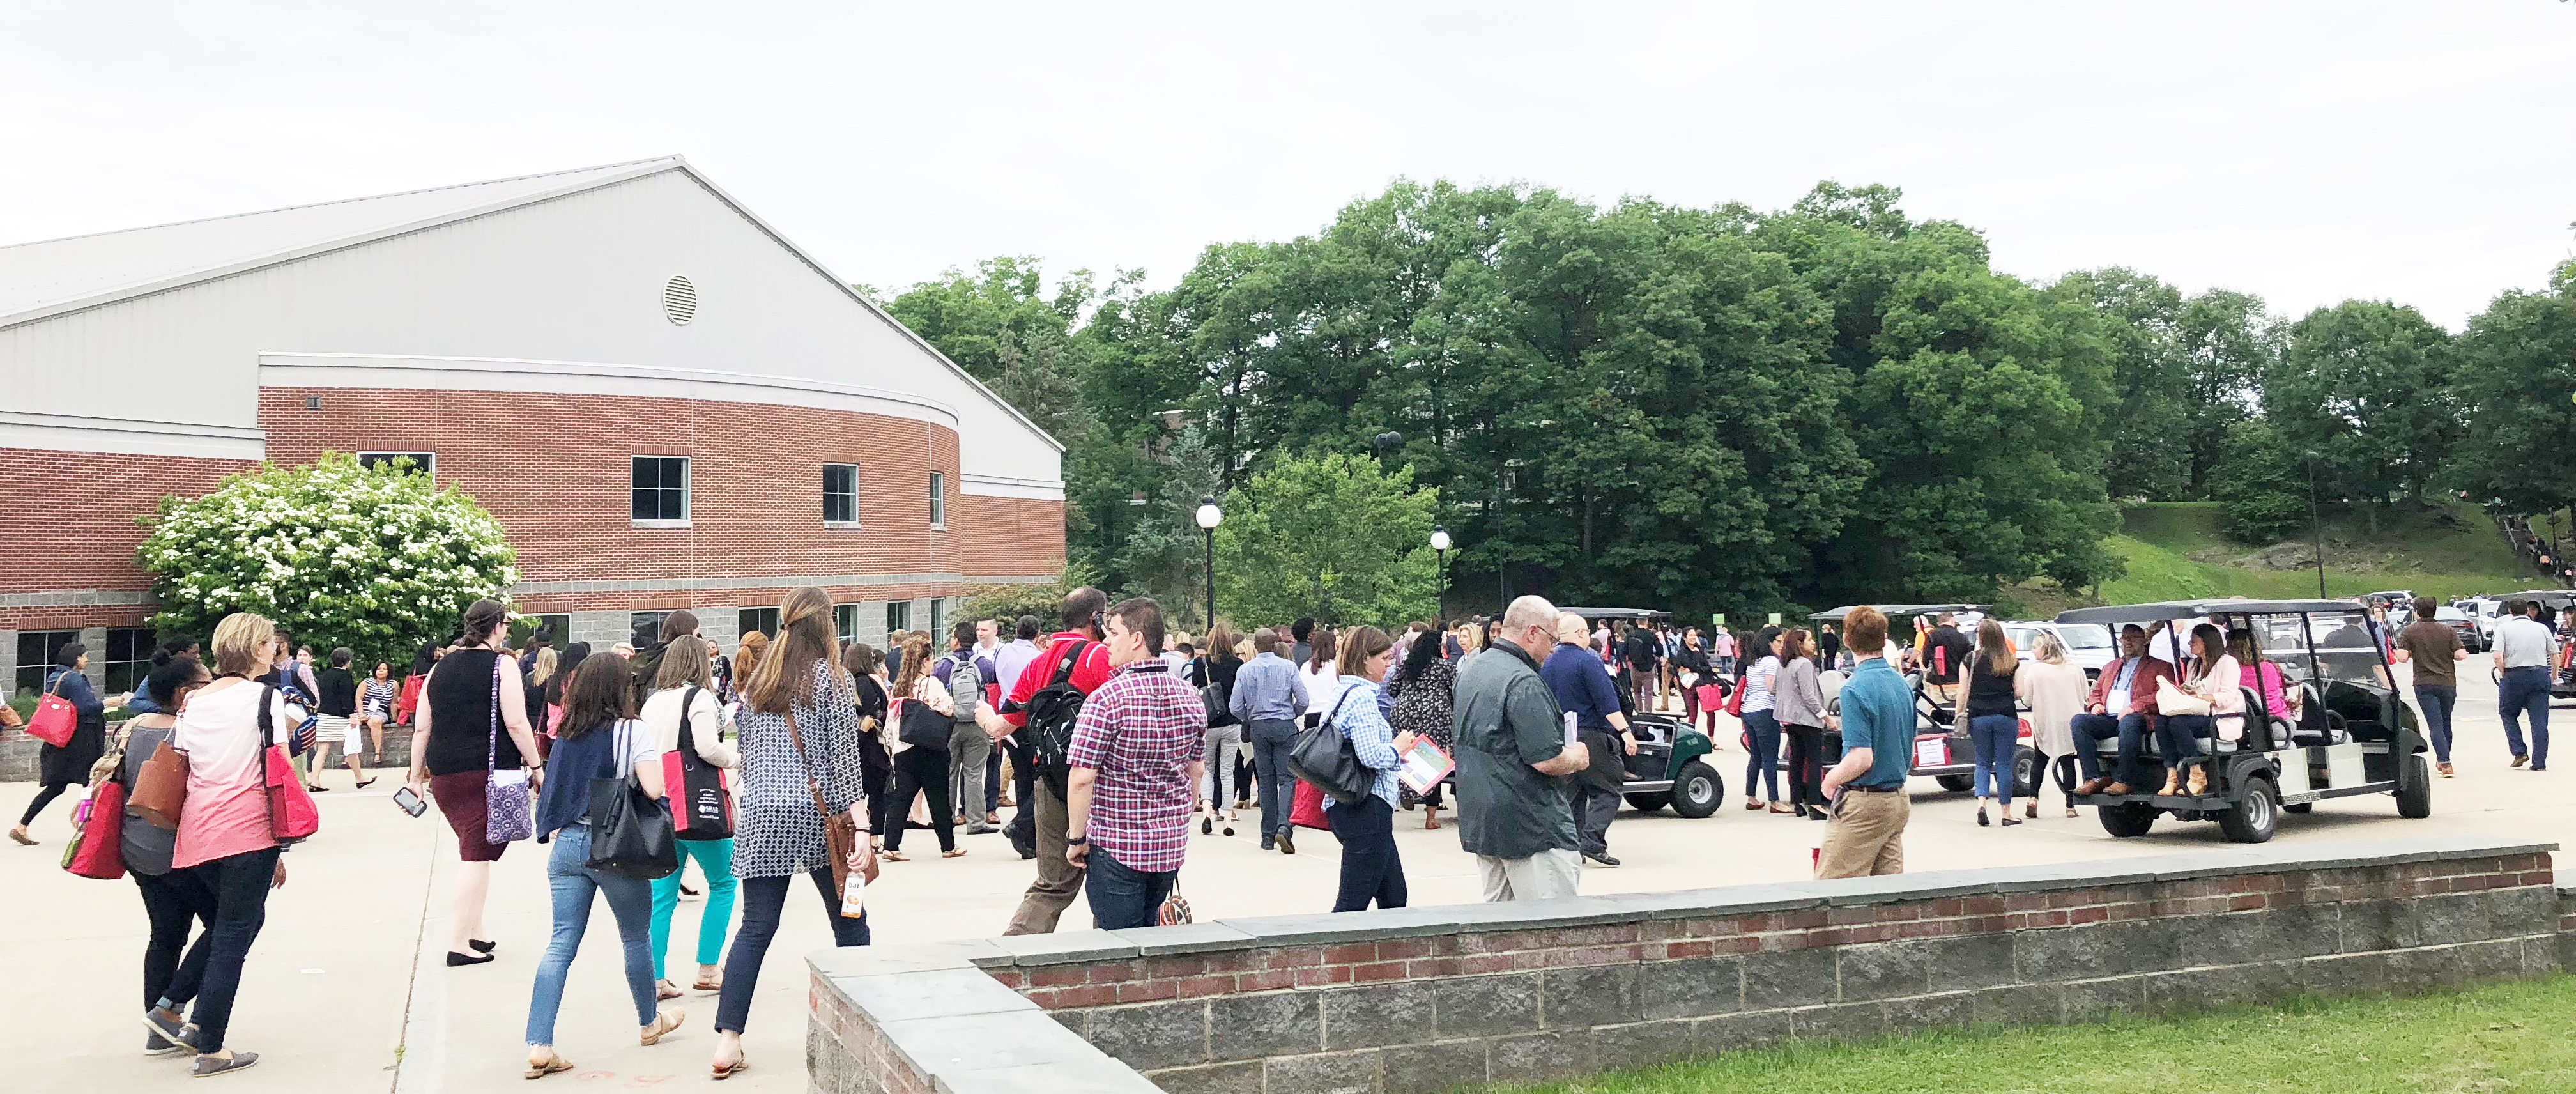 College Campus open house example